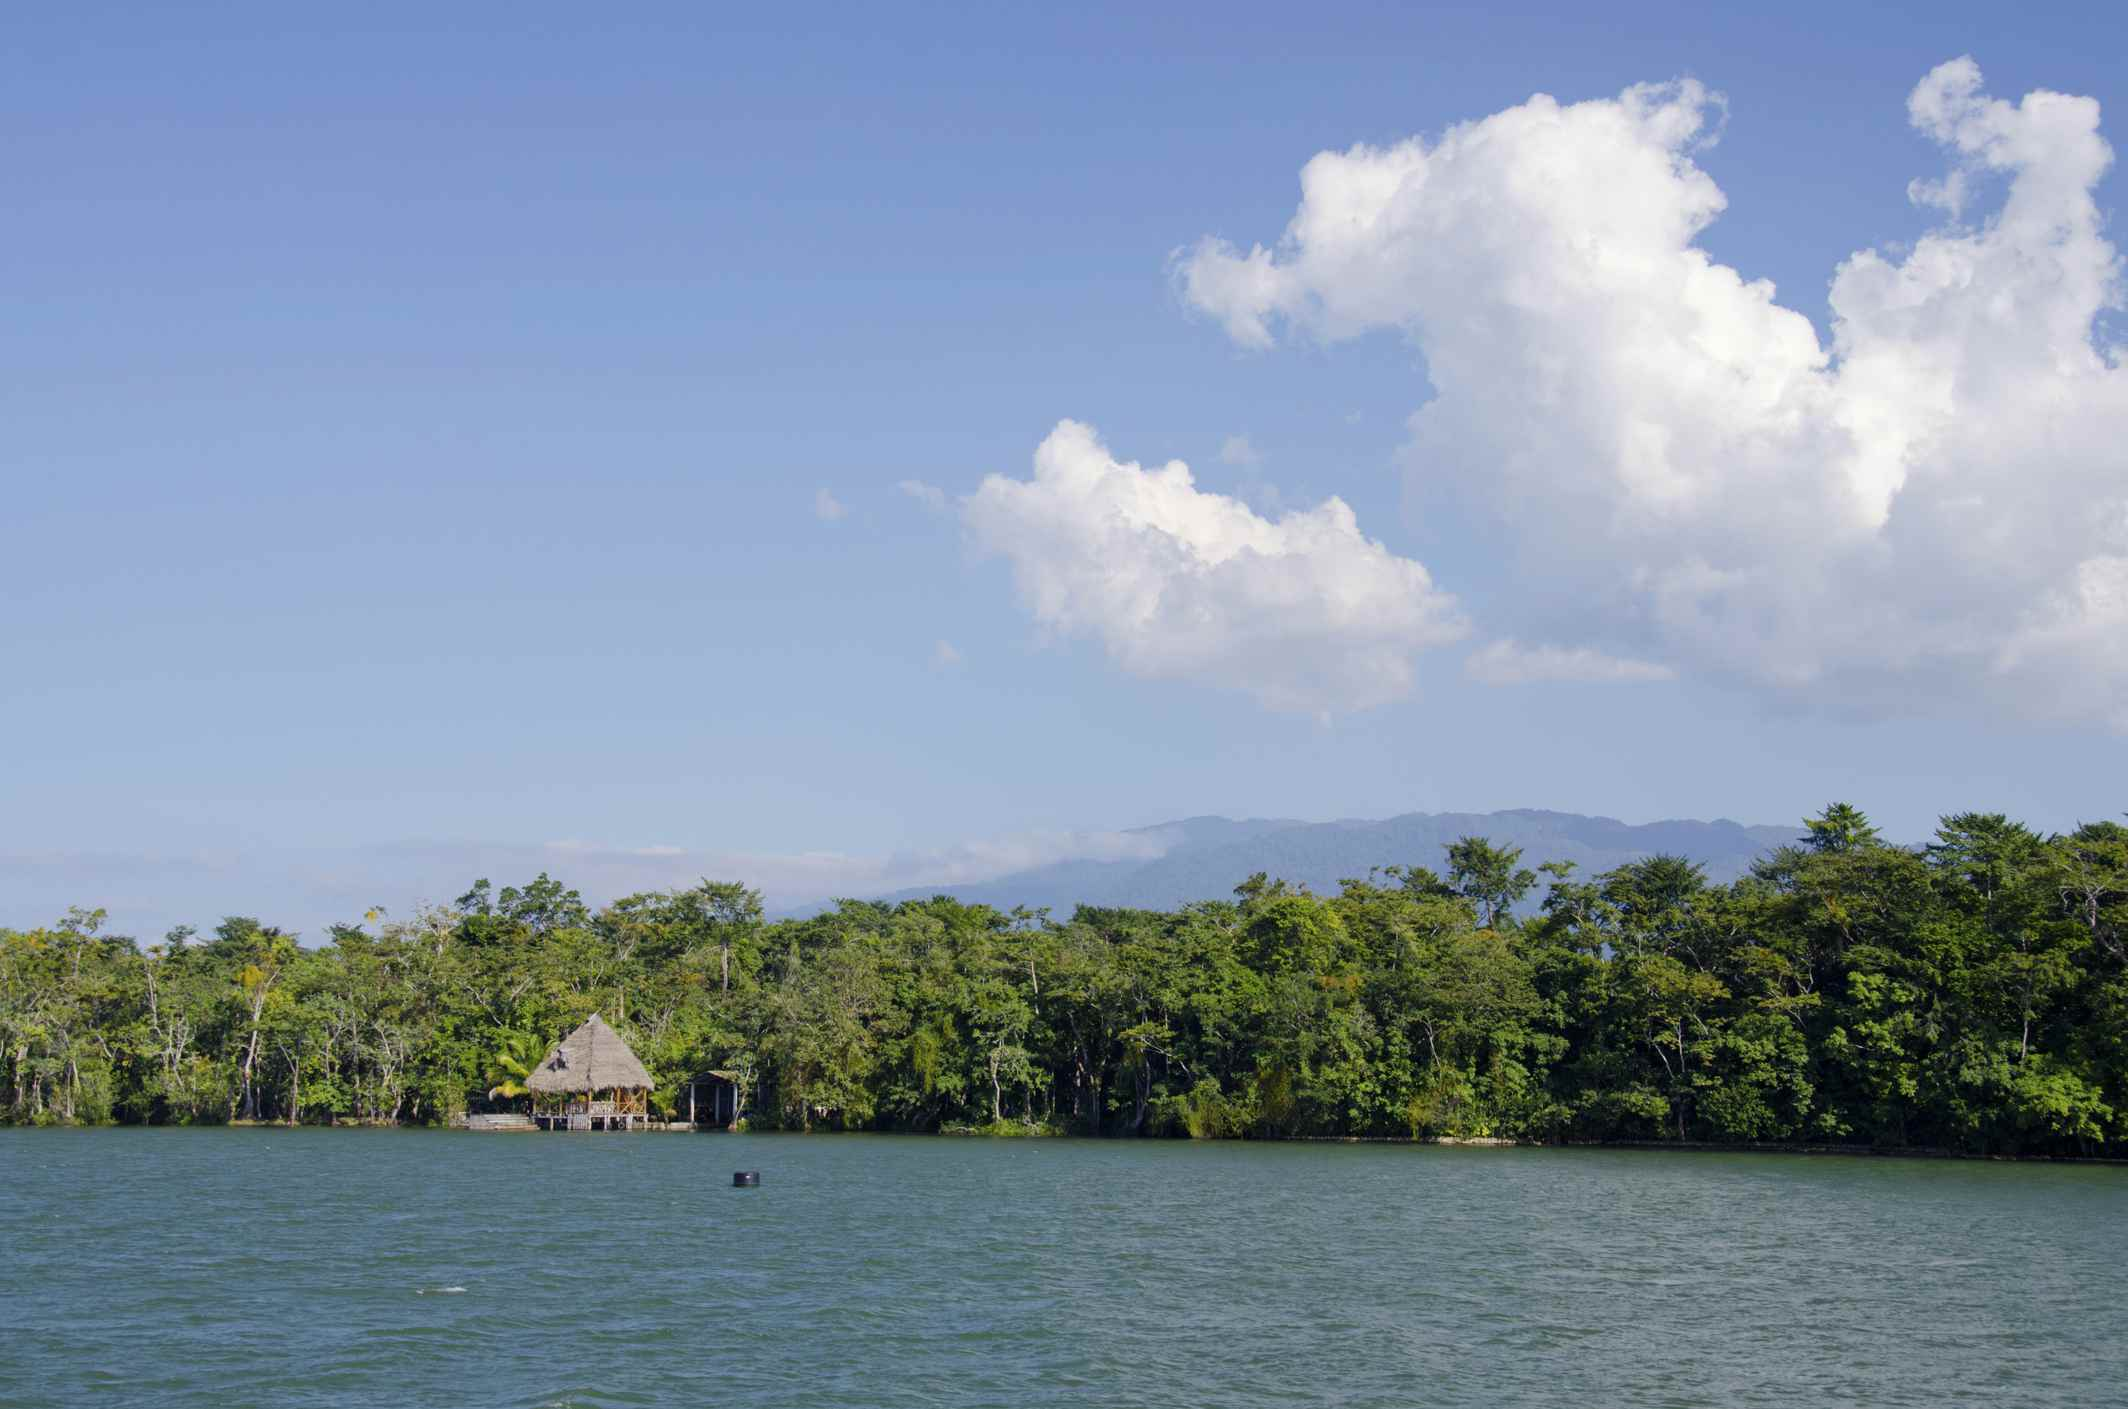 Typical riverside view of Rio Dulce, Rio Dulce National Park, Guatemala